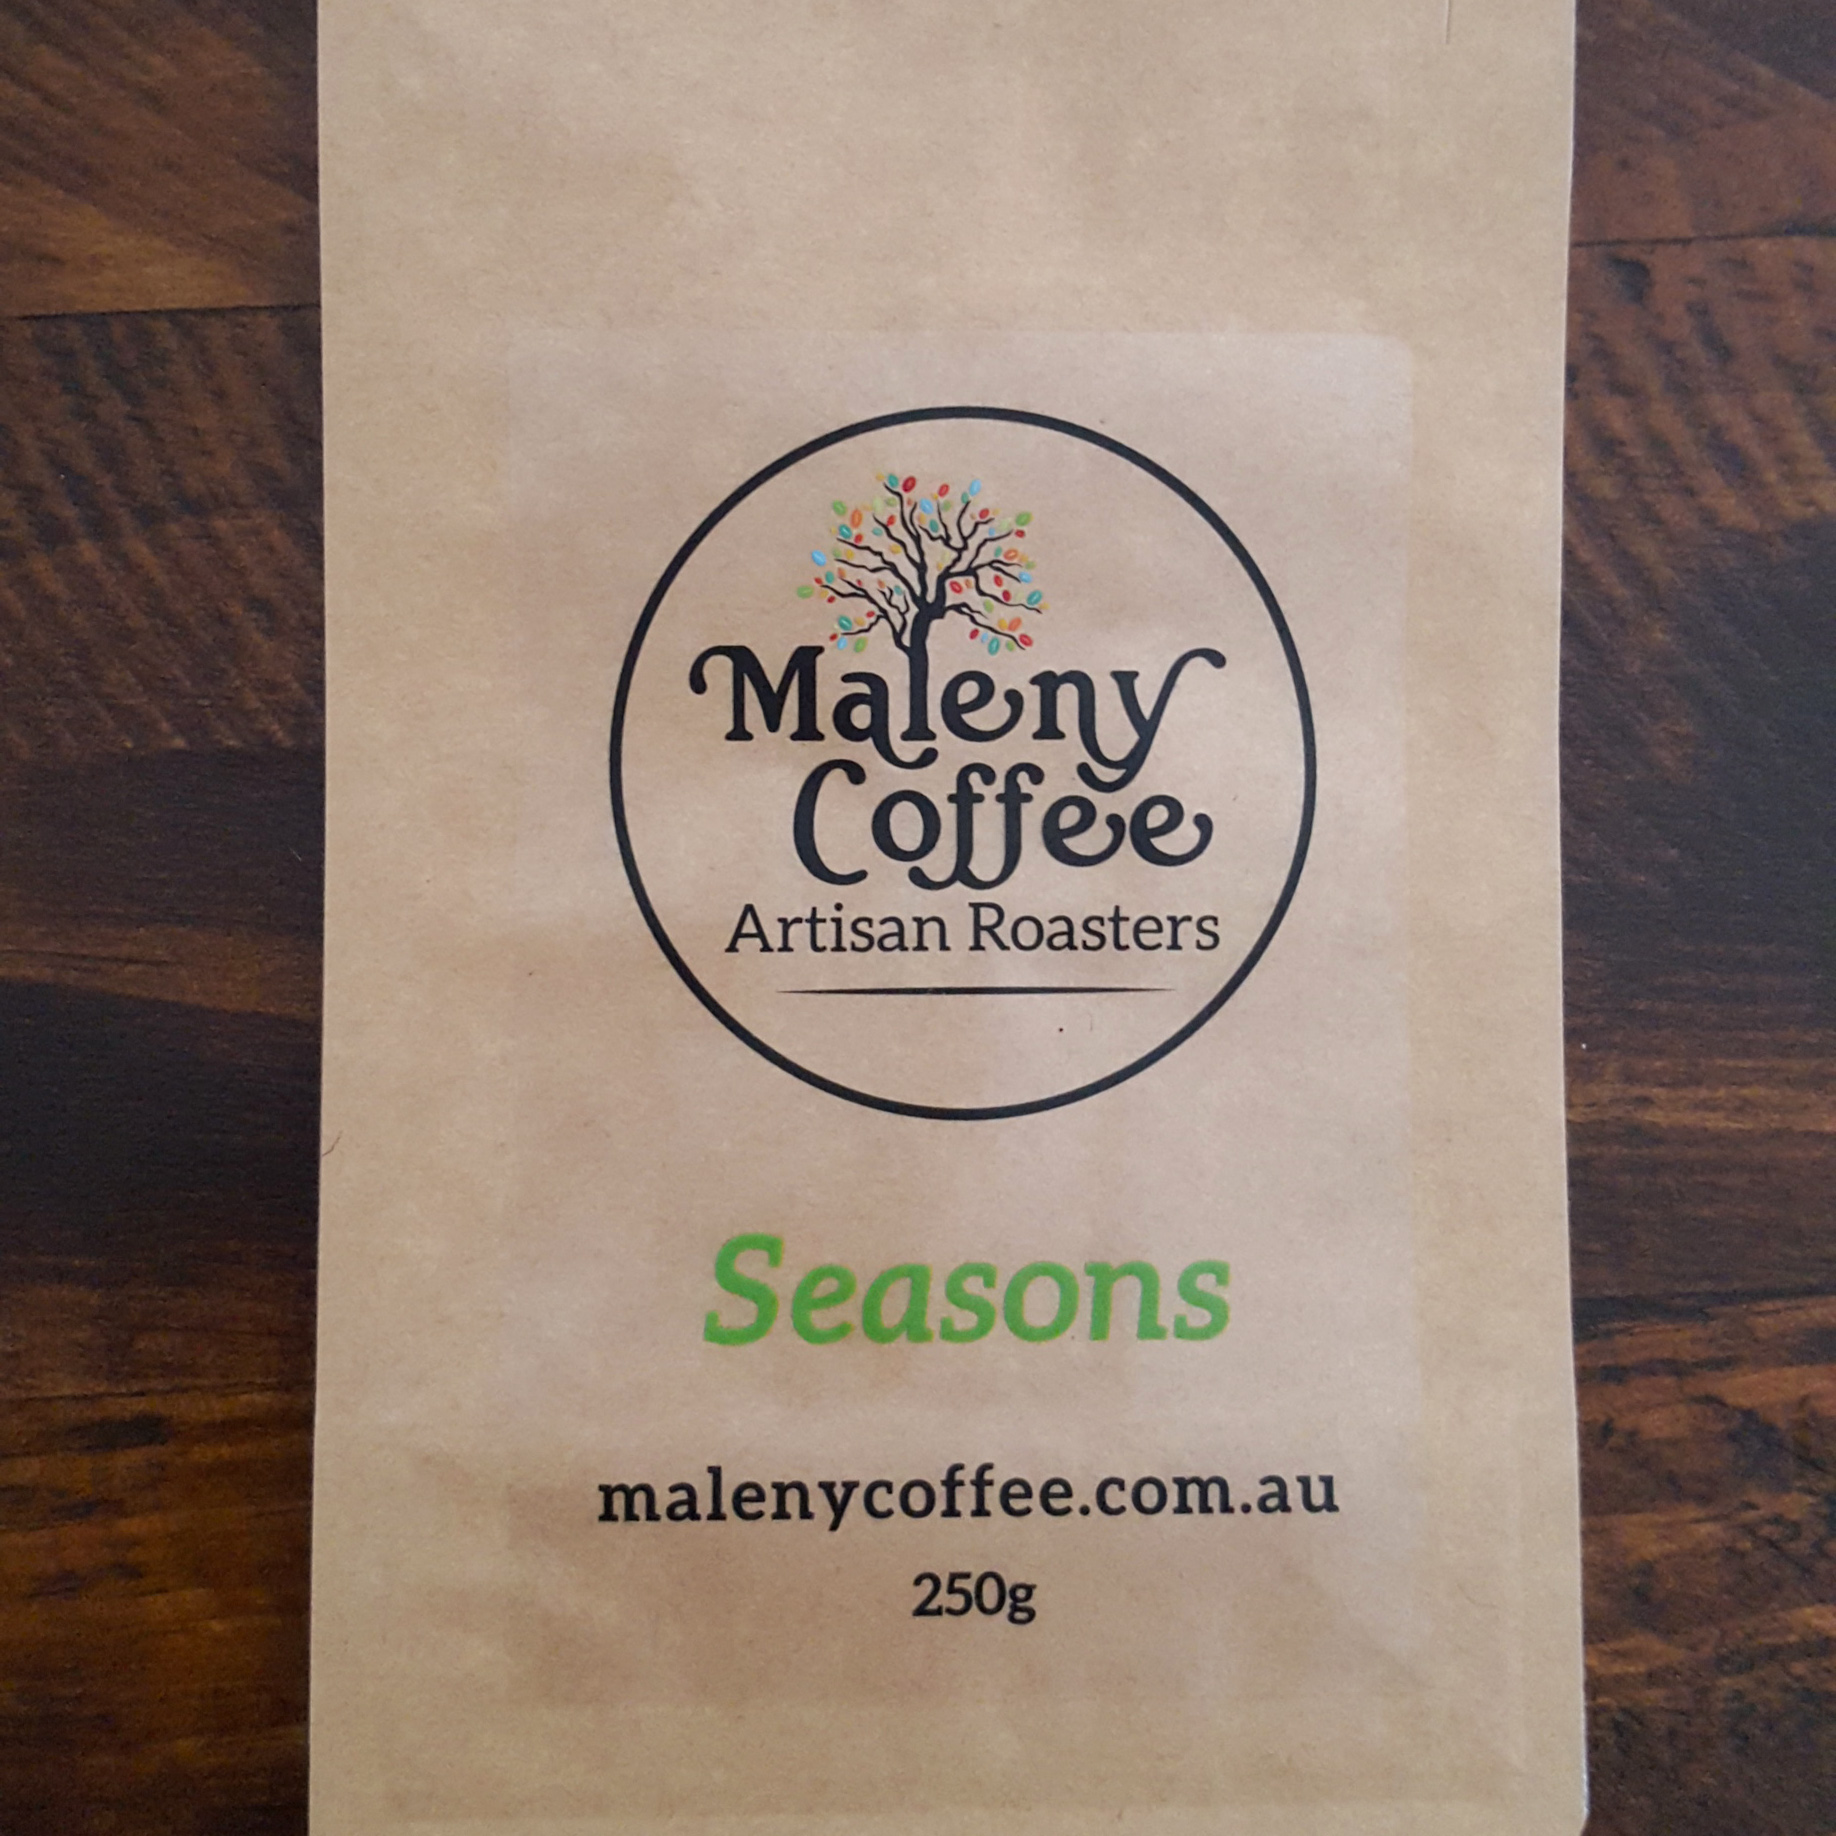 Maleny Coffee Seasons